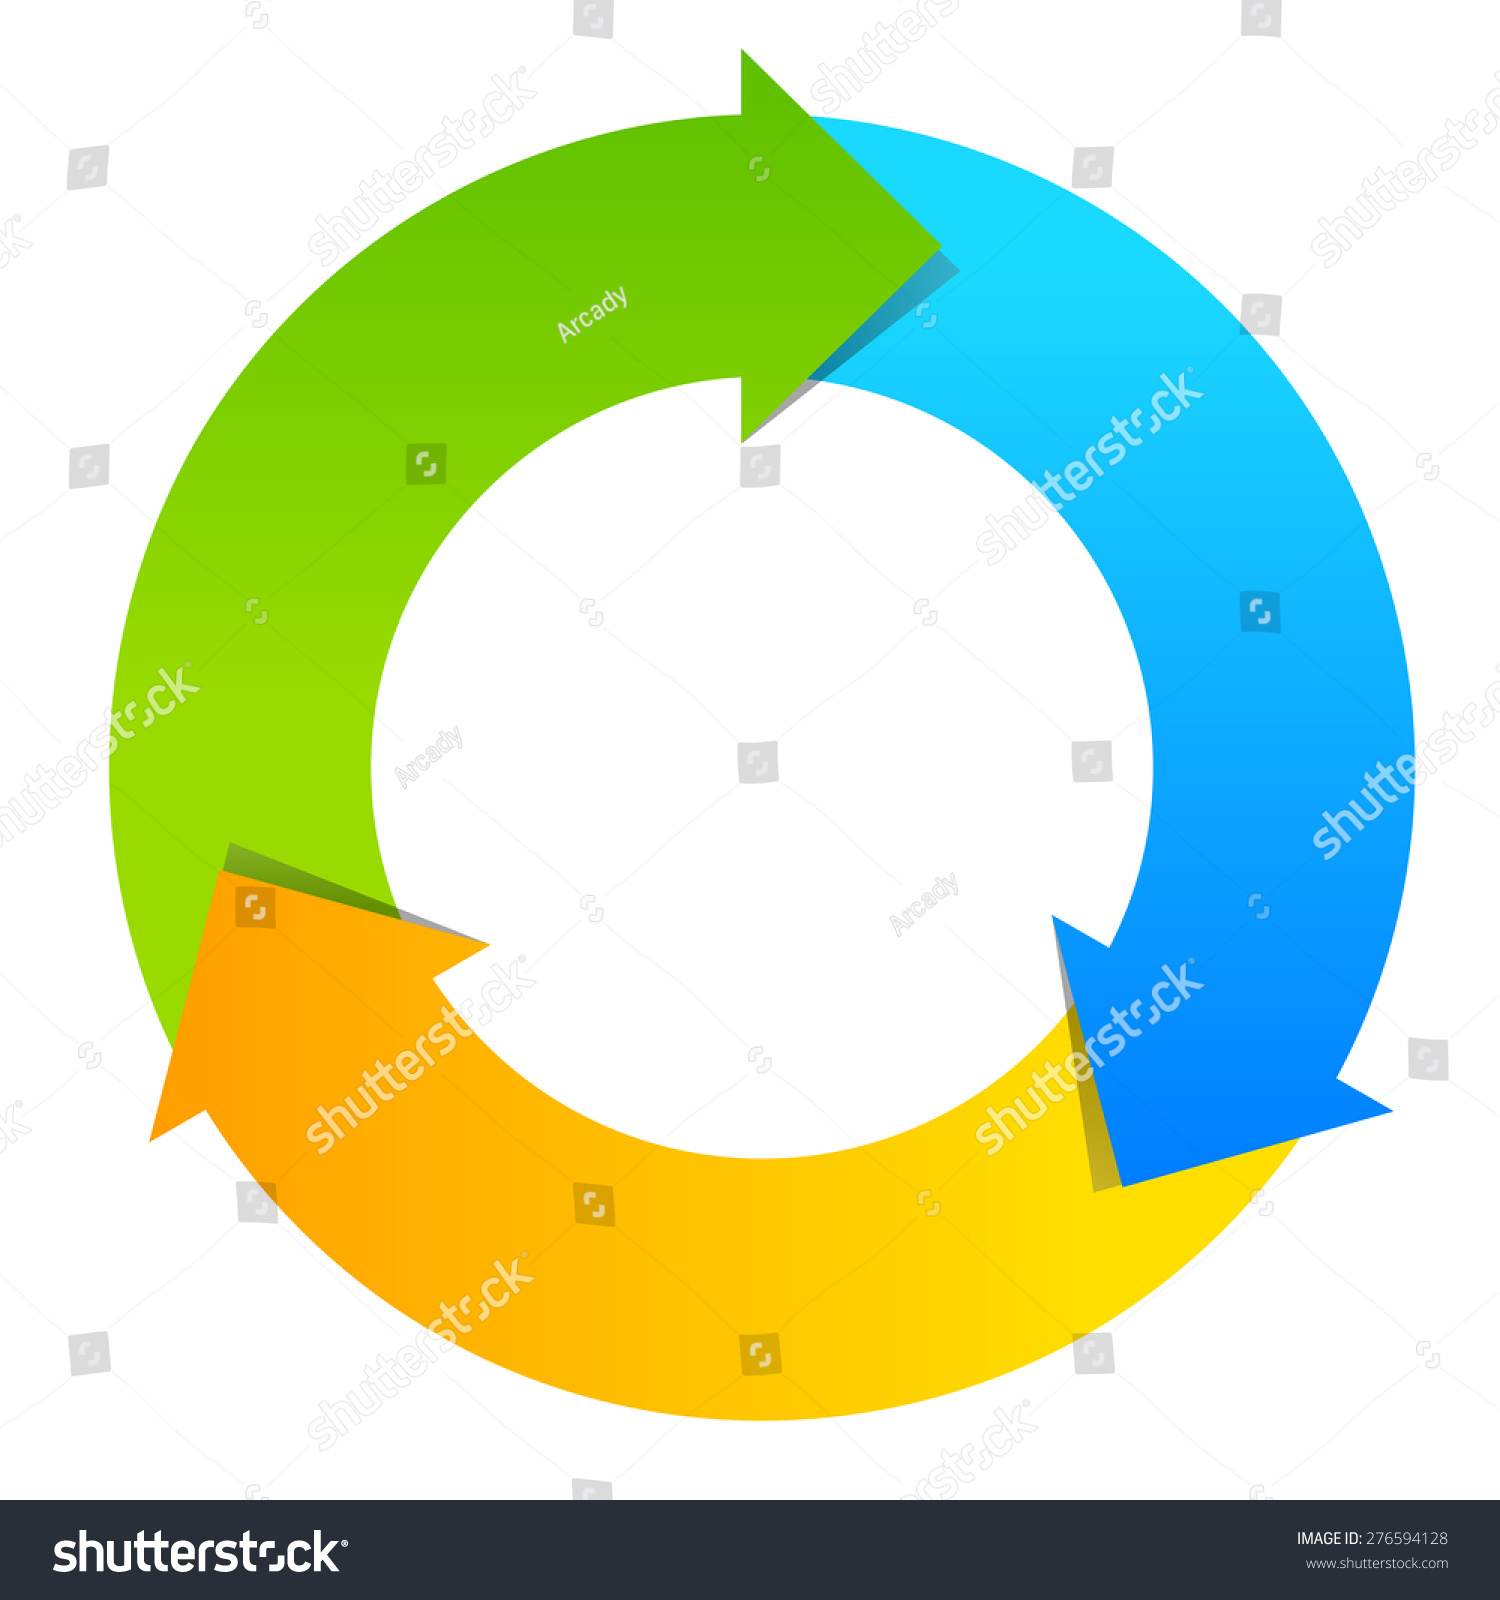 three part cycle diagram stock vector illustration 276594128  : cycle diagram - findchart.co